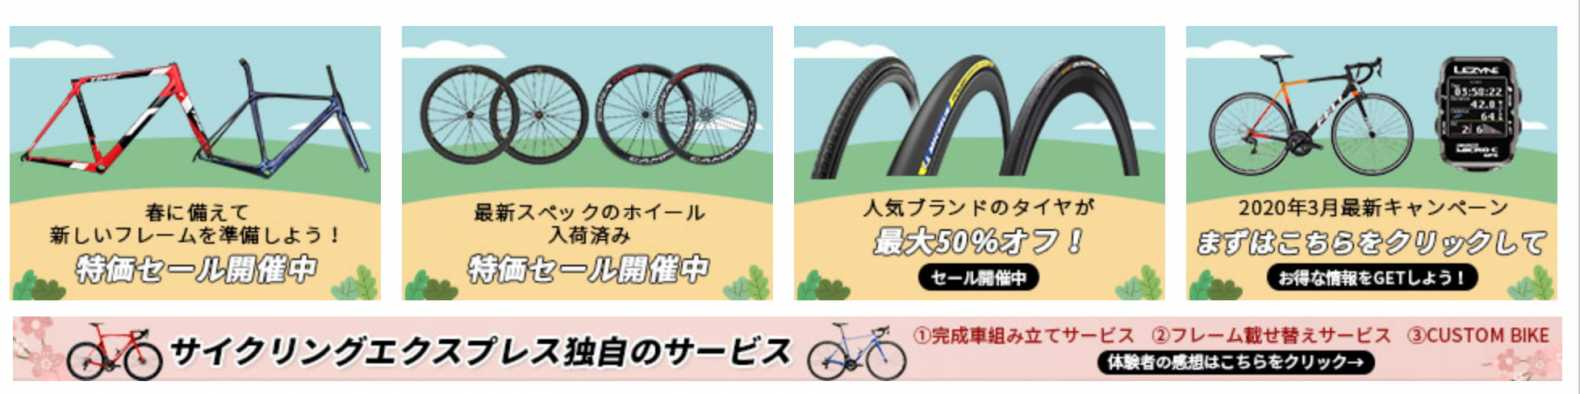 「cyclingexpress.com」より引用